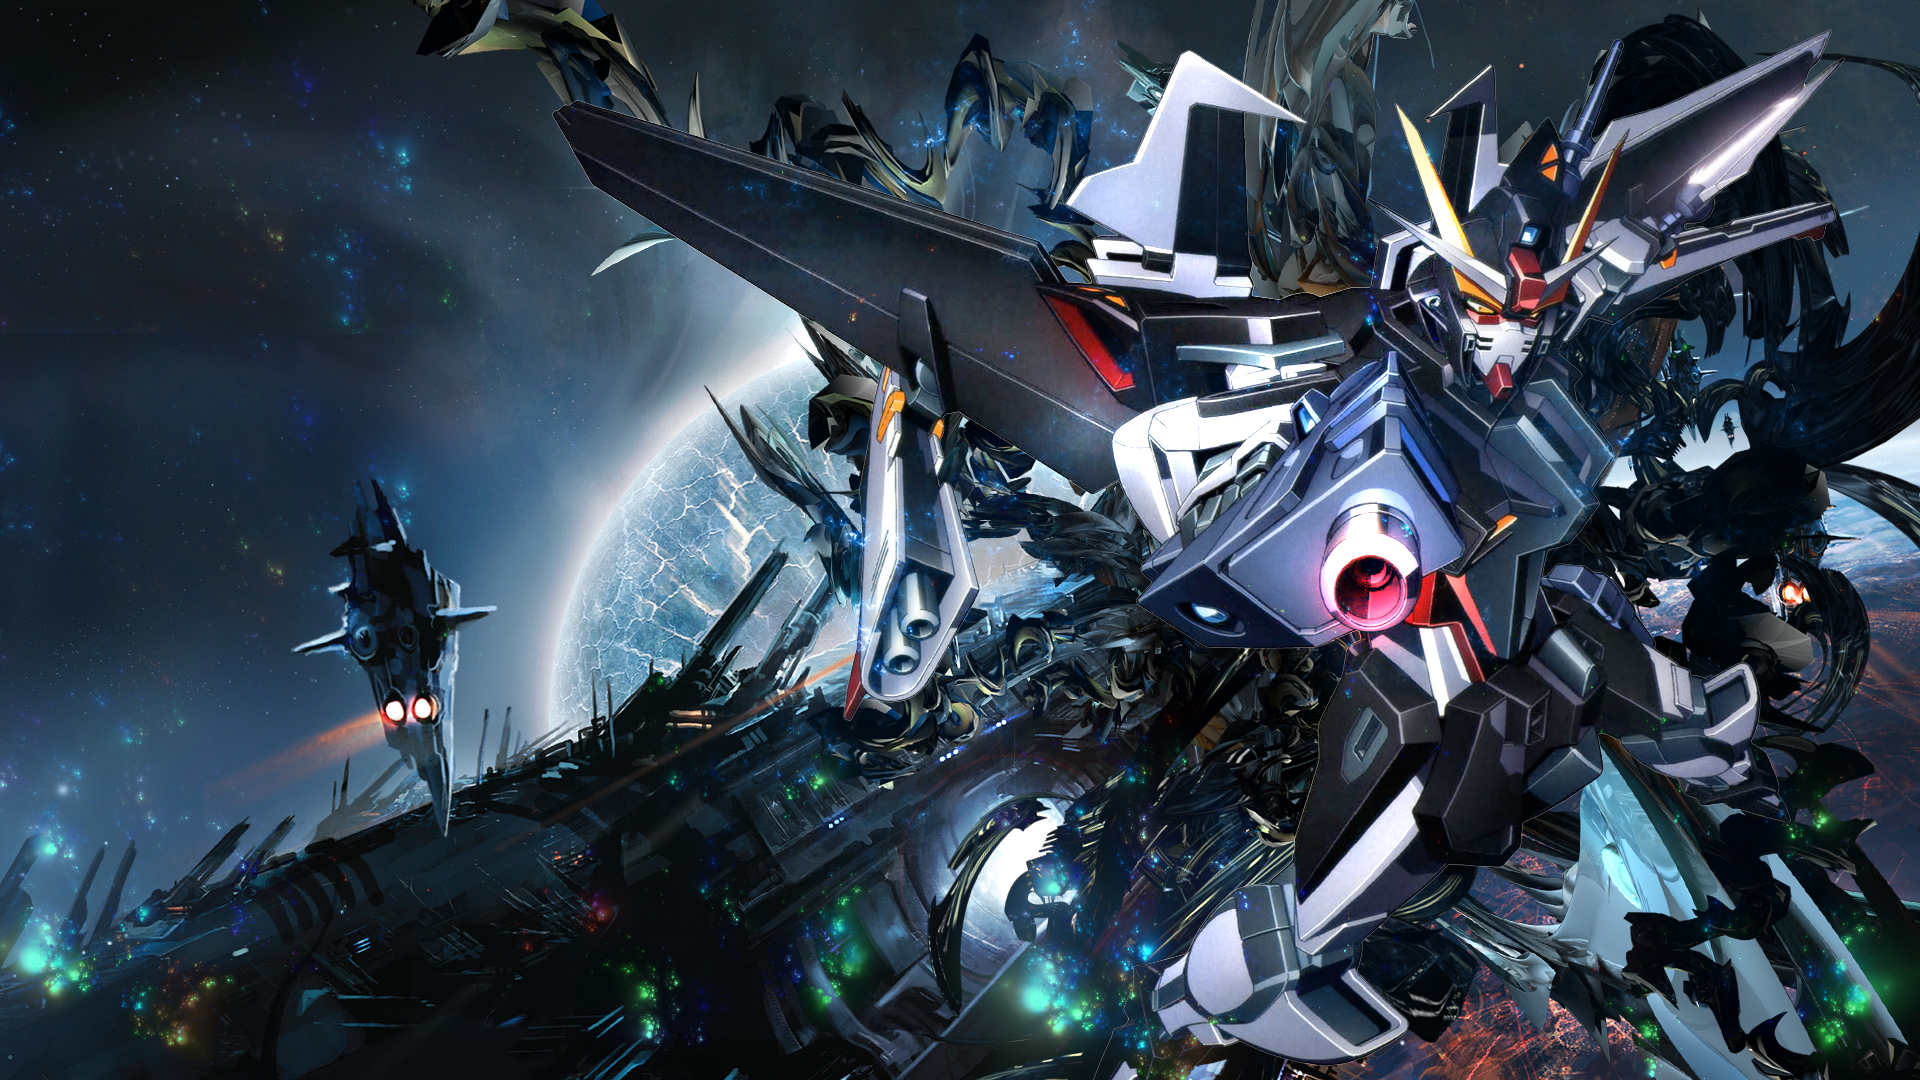 Gundam Android Iphone Desktop Hd Backgrounds Wallpapers 1080p 4k 120648 Hdwallpapers Androidwallpaper Gundam Wallpapers Gundam Art Unicorn Gundam